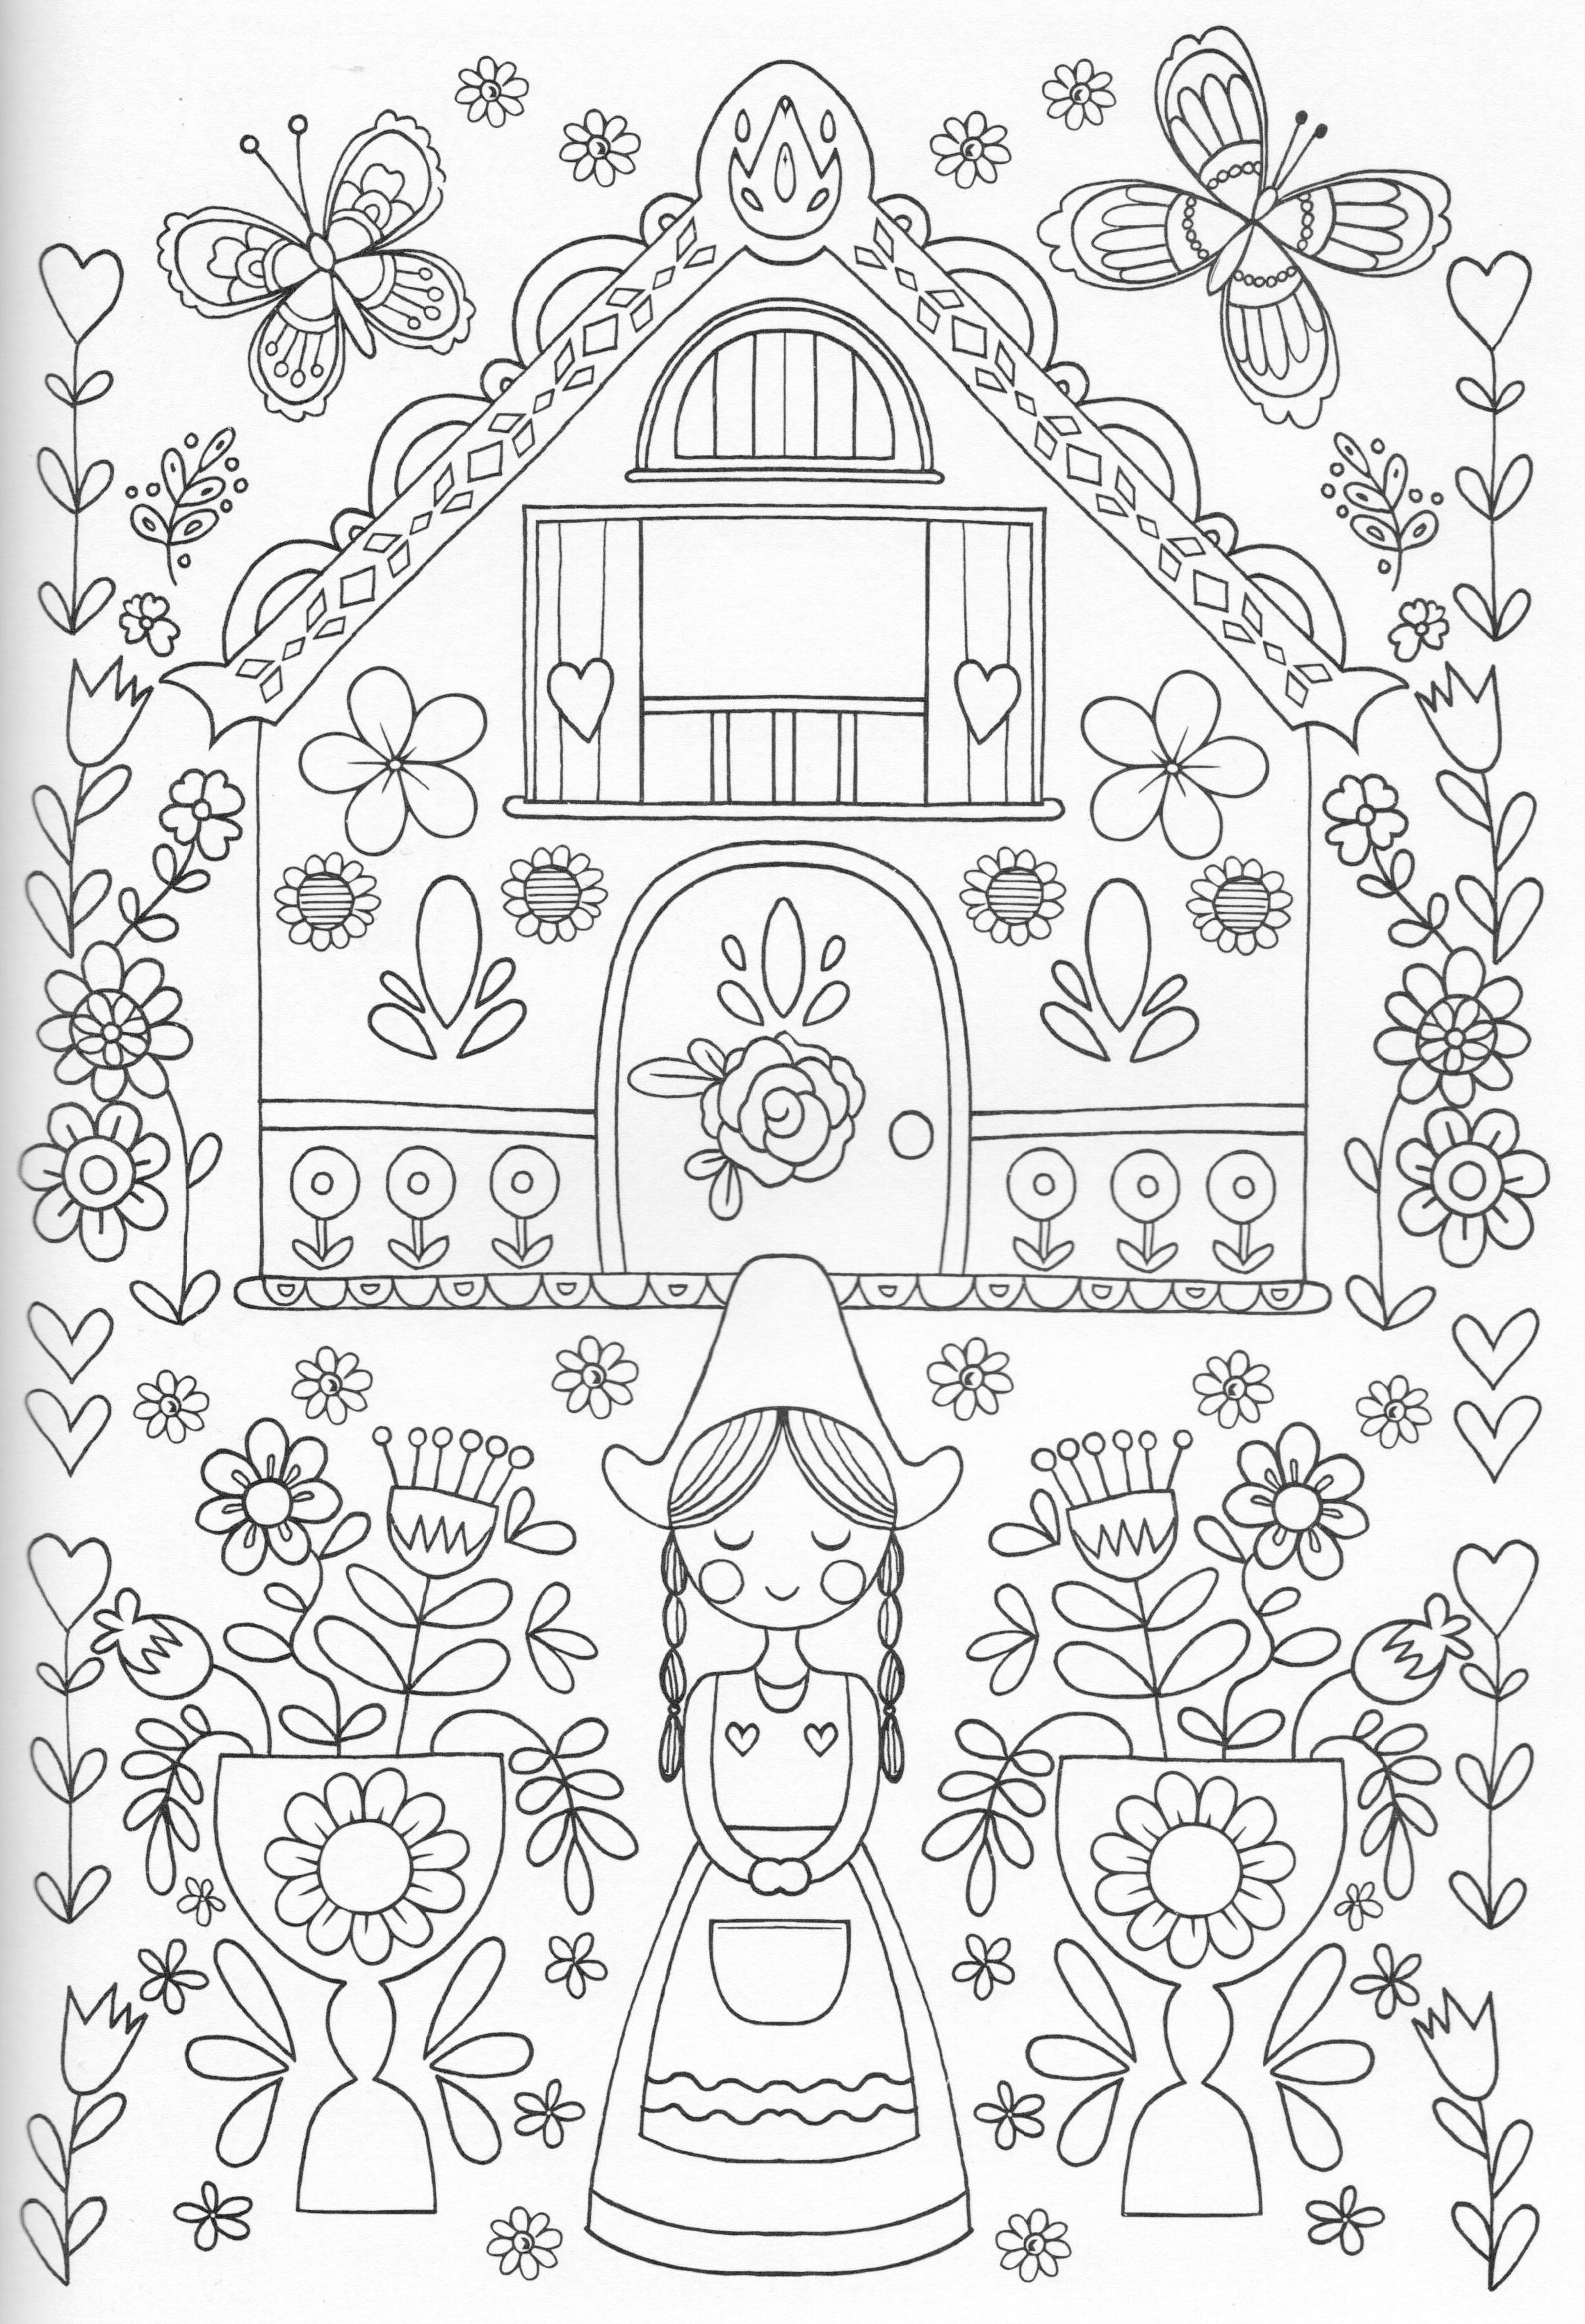 Coloring book pages pinterest - Scandinavian Coloring Book Pg 25